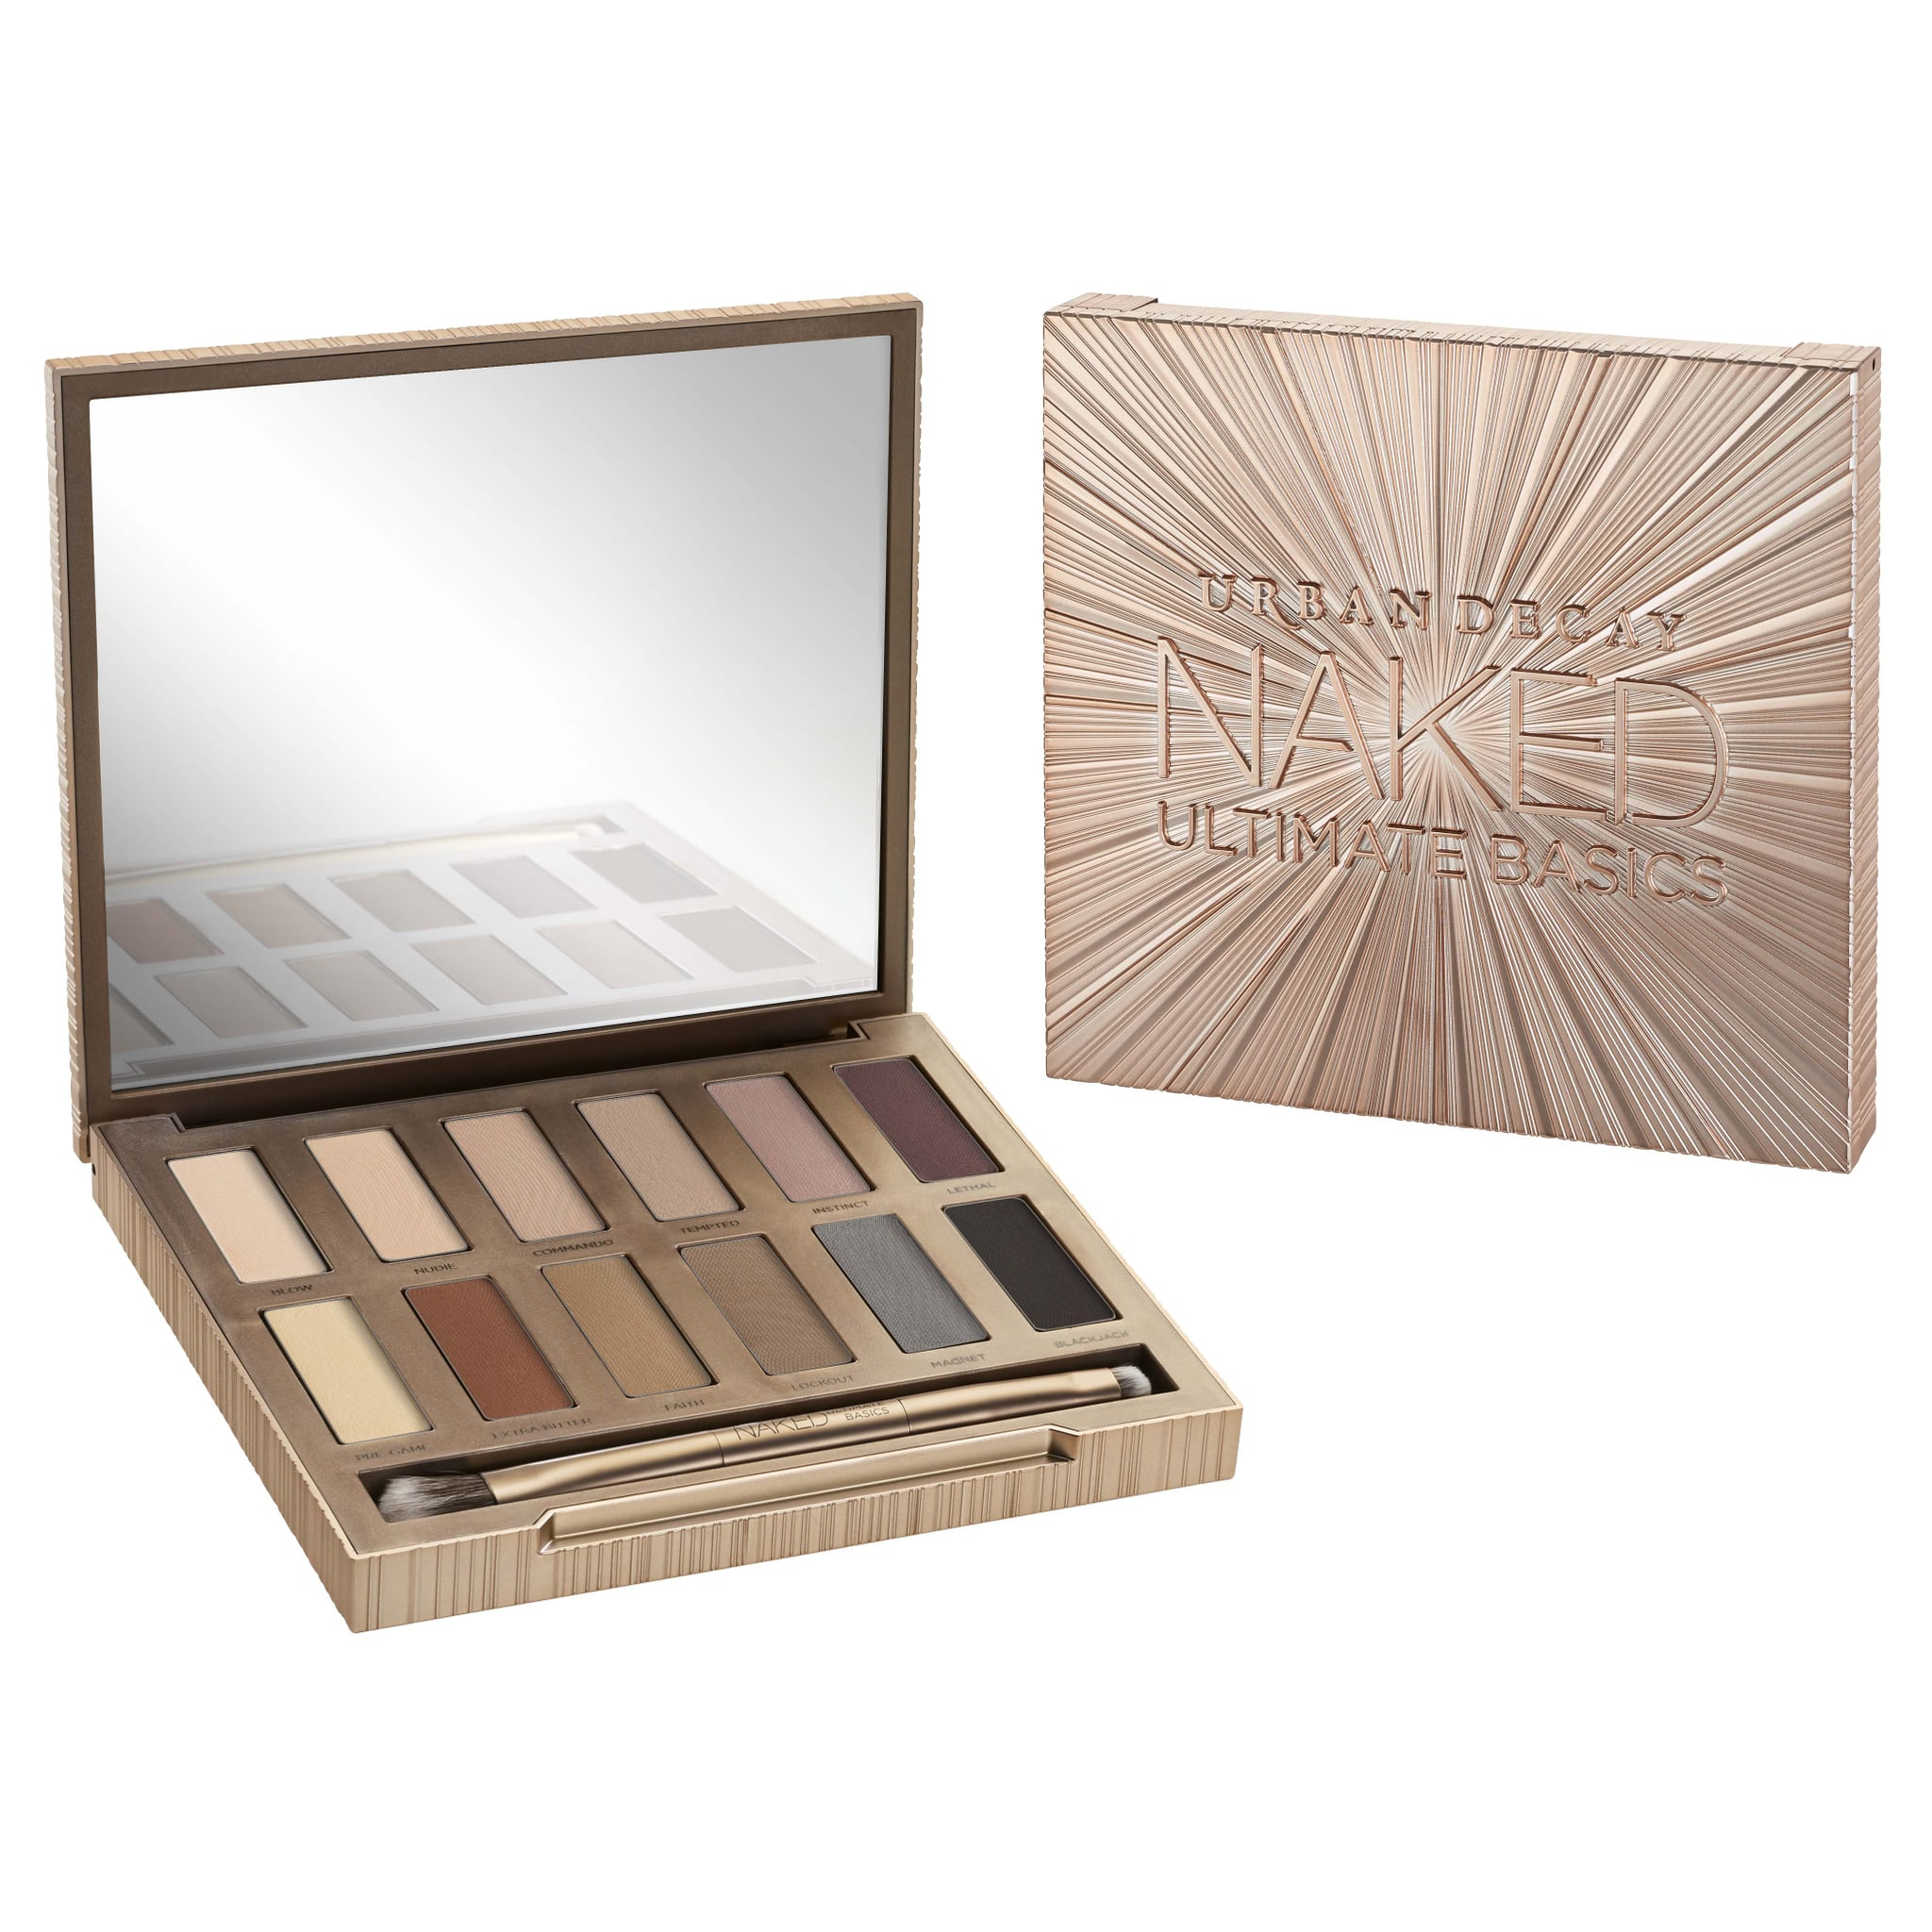 ad3dfe8ca1068ffa_Urban_Decay_NAKED_Ultimate_Basics_Palette_-_Open_and_Closed.jpg (2048×2048)